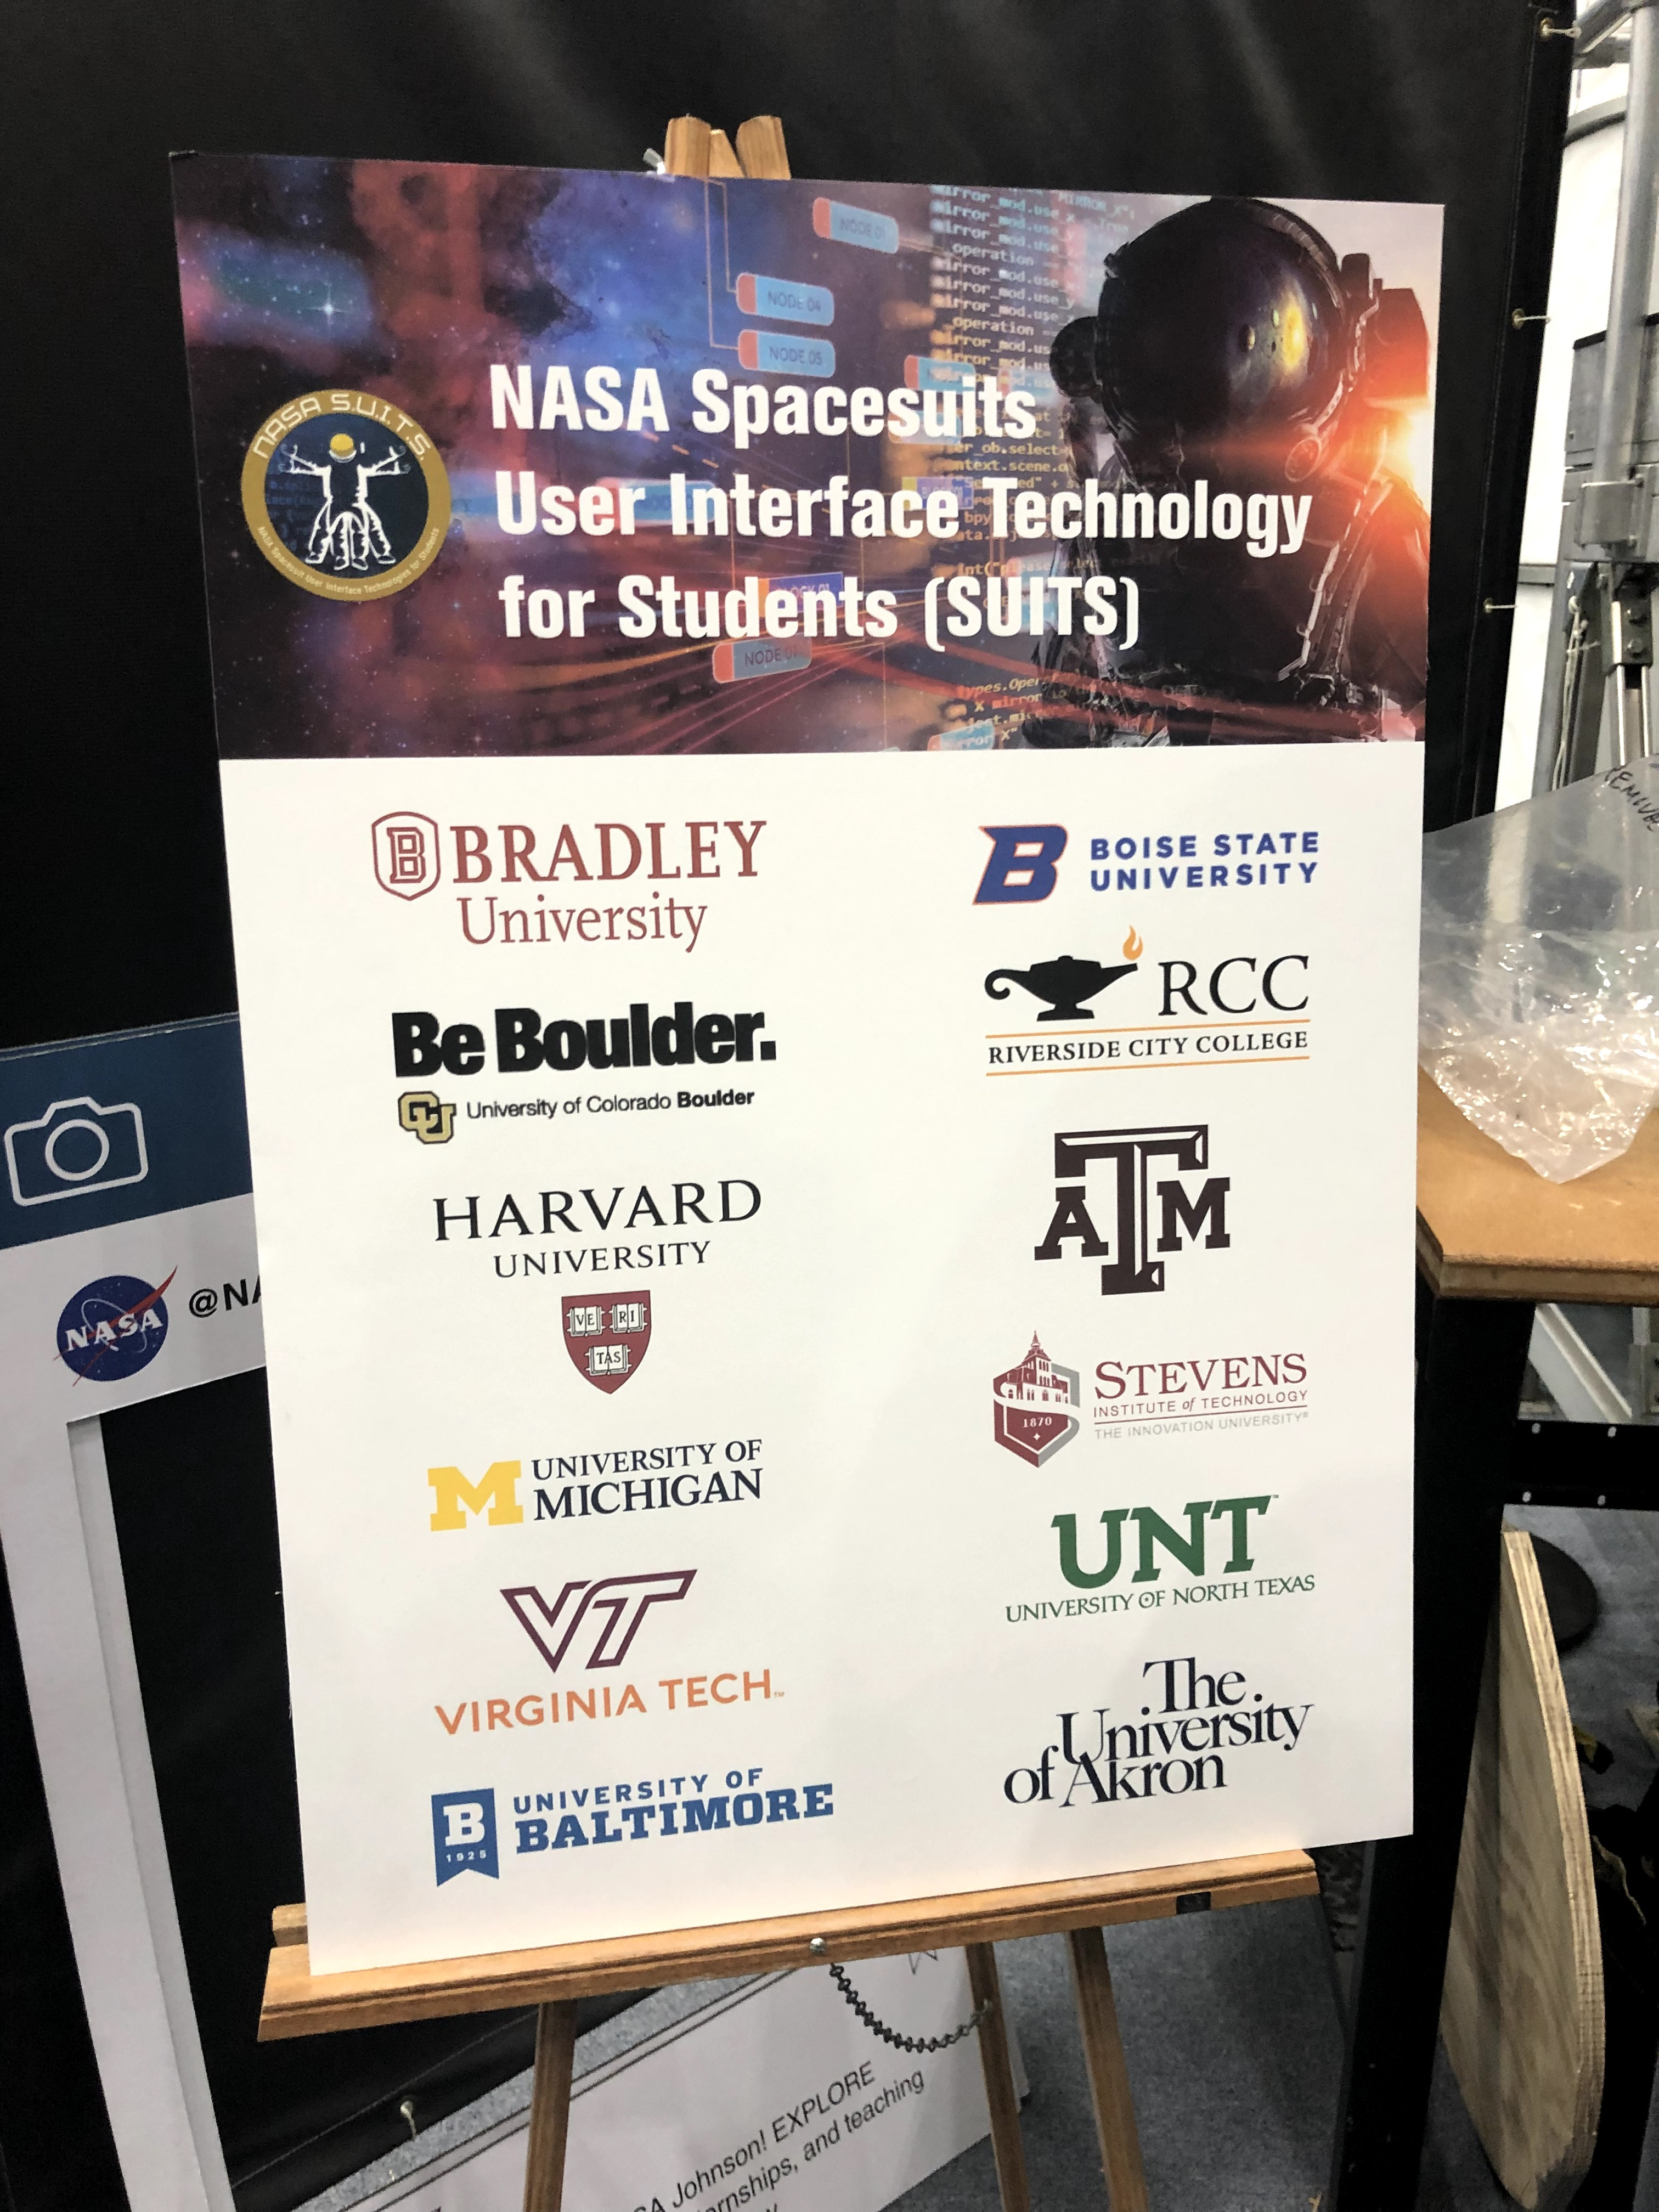 Image of Promotional Material at Johnson Space Center revealing the schools involved in the NASA Suits challenge. Boise State is listed among schools such as Harvard and Virginia Tech